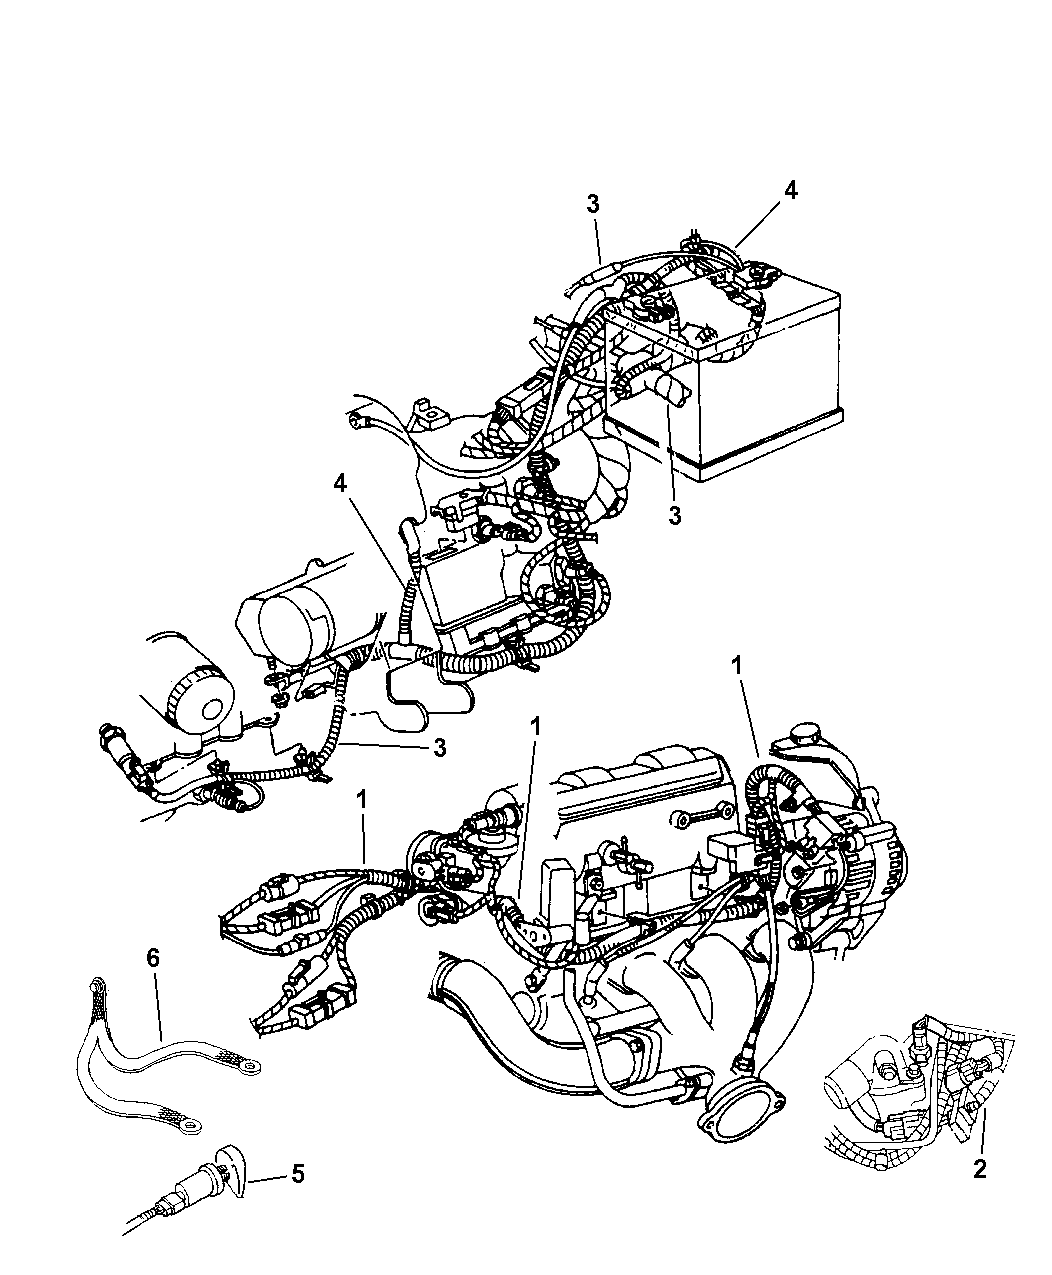 2000 Chrysler Concorde Wiring Engine Related Parts Diagram